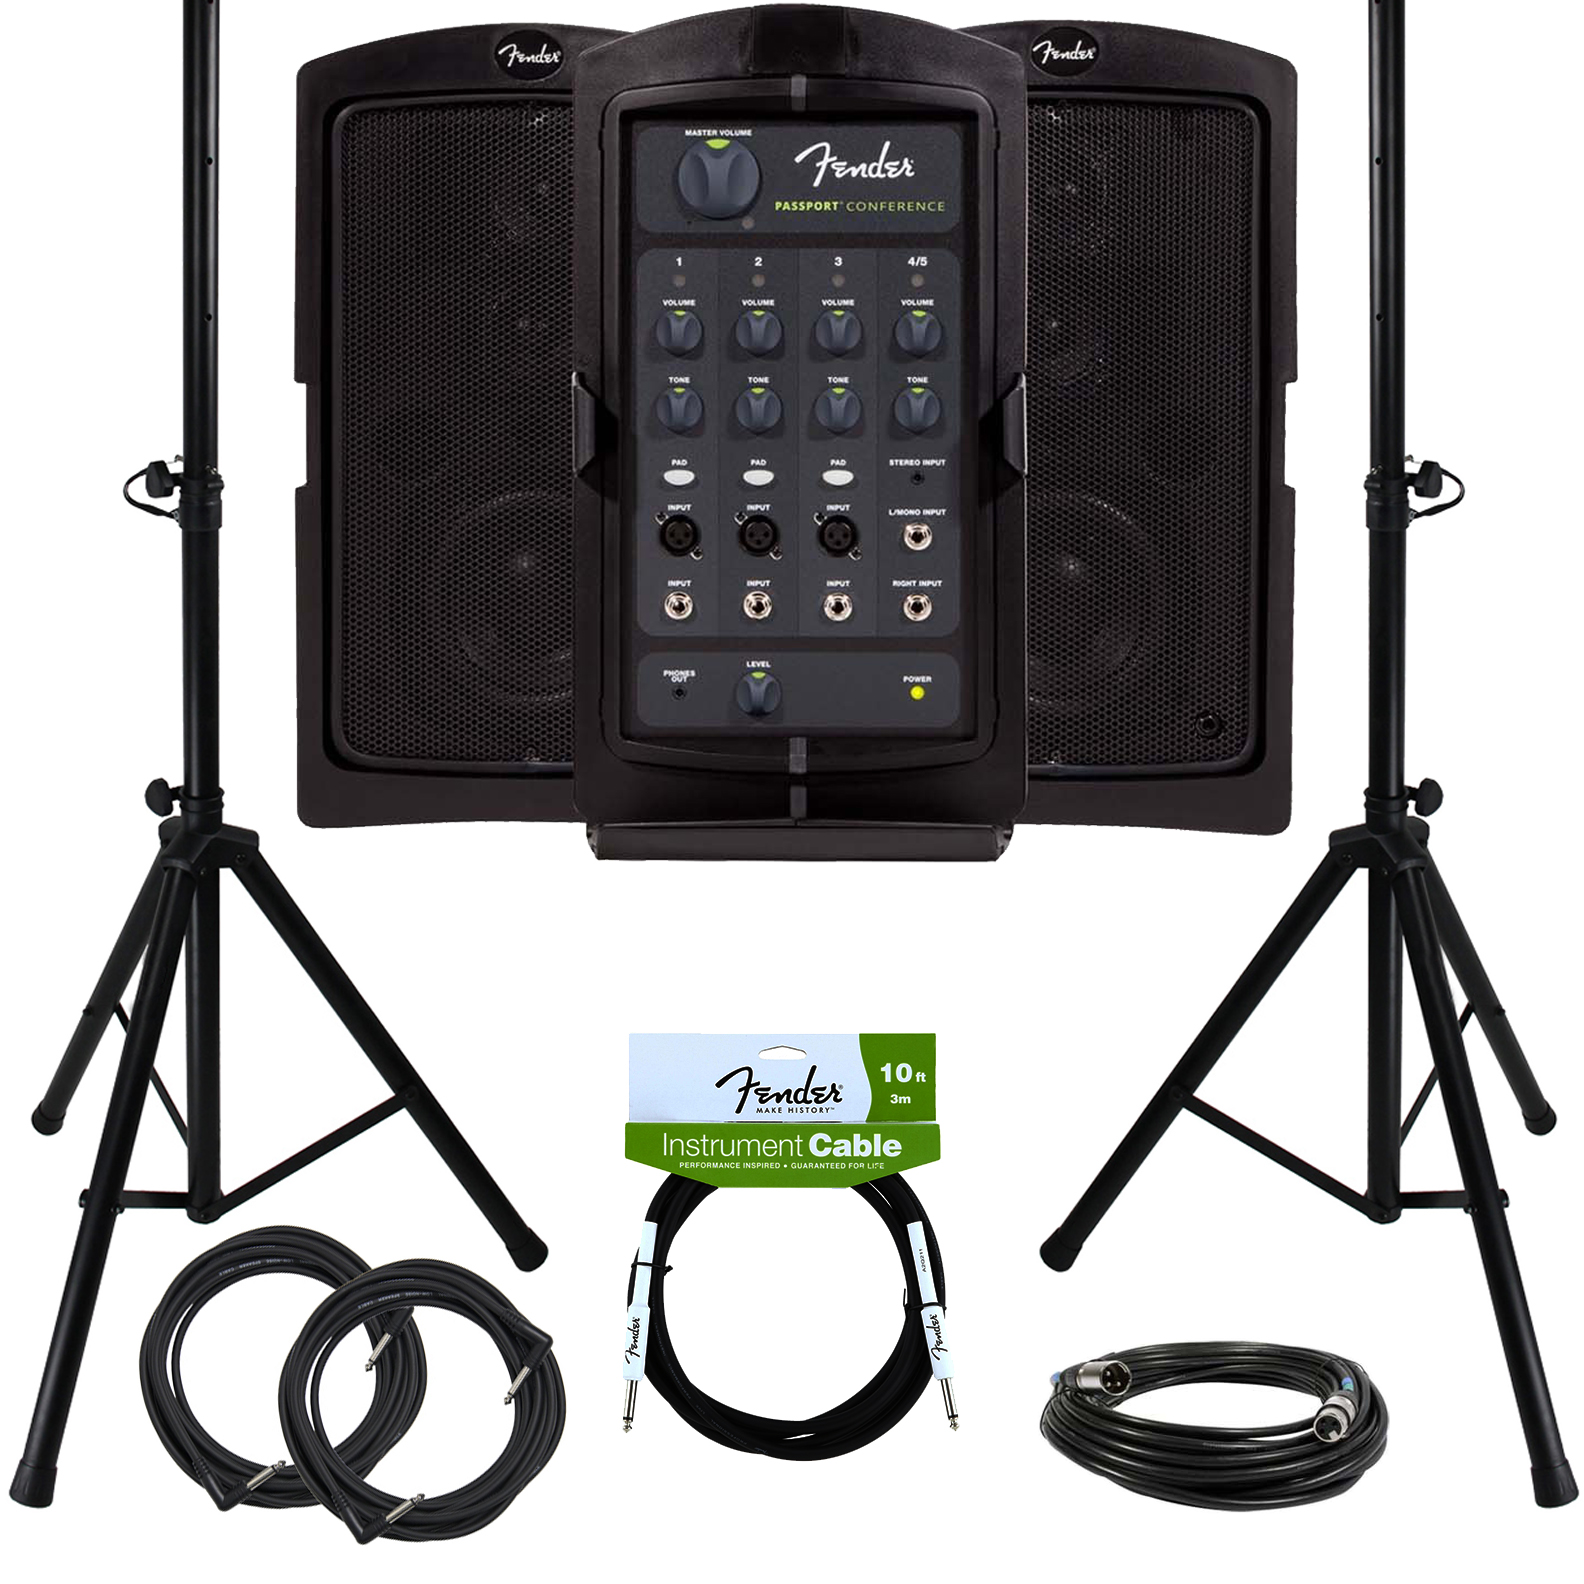 Fender Passport Conference Portable PA System w  Stands